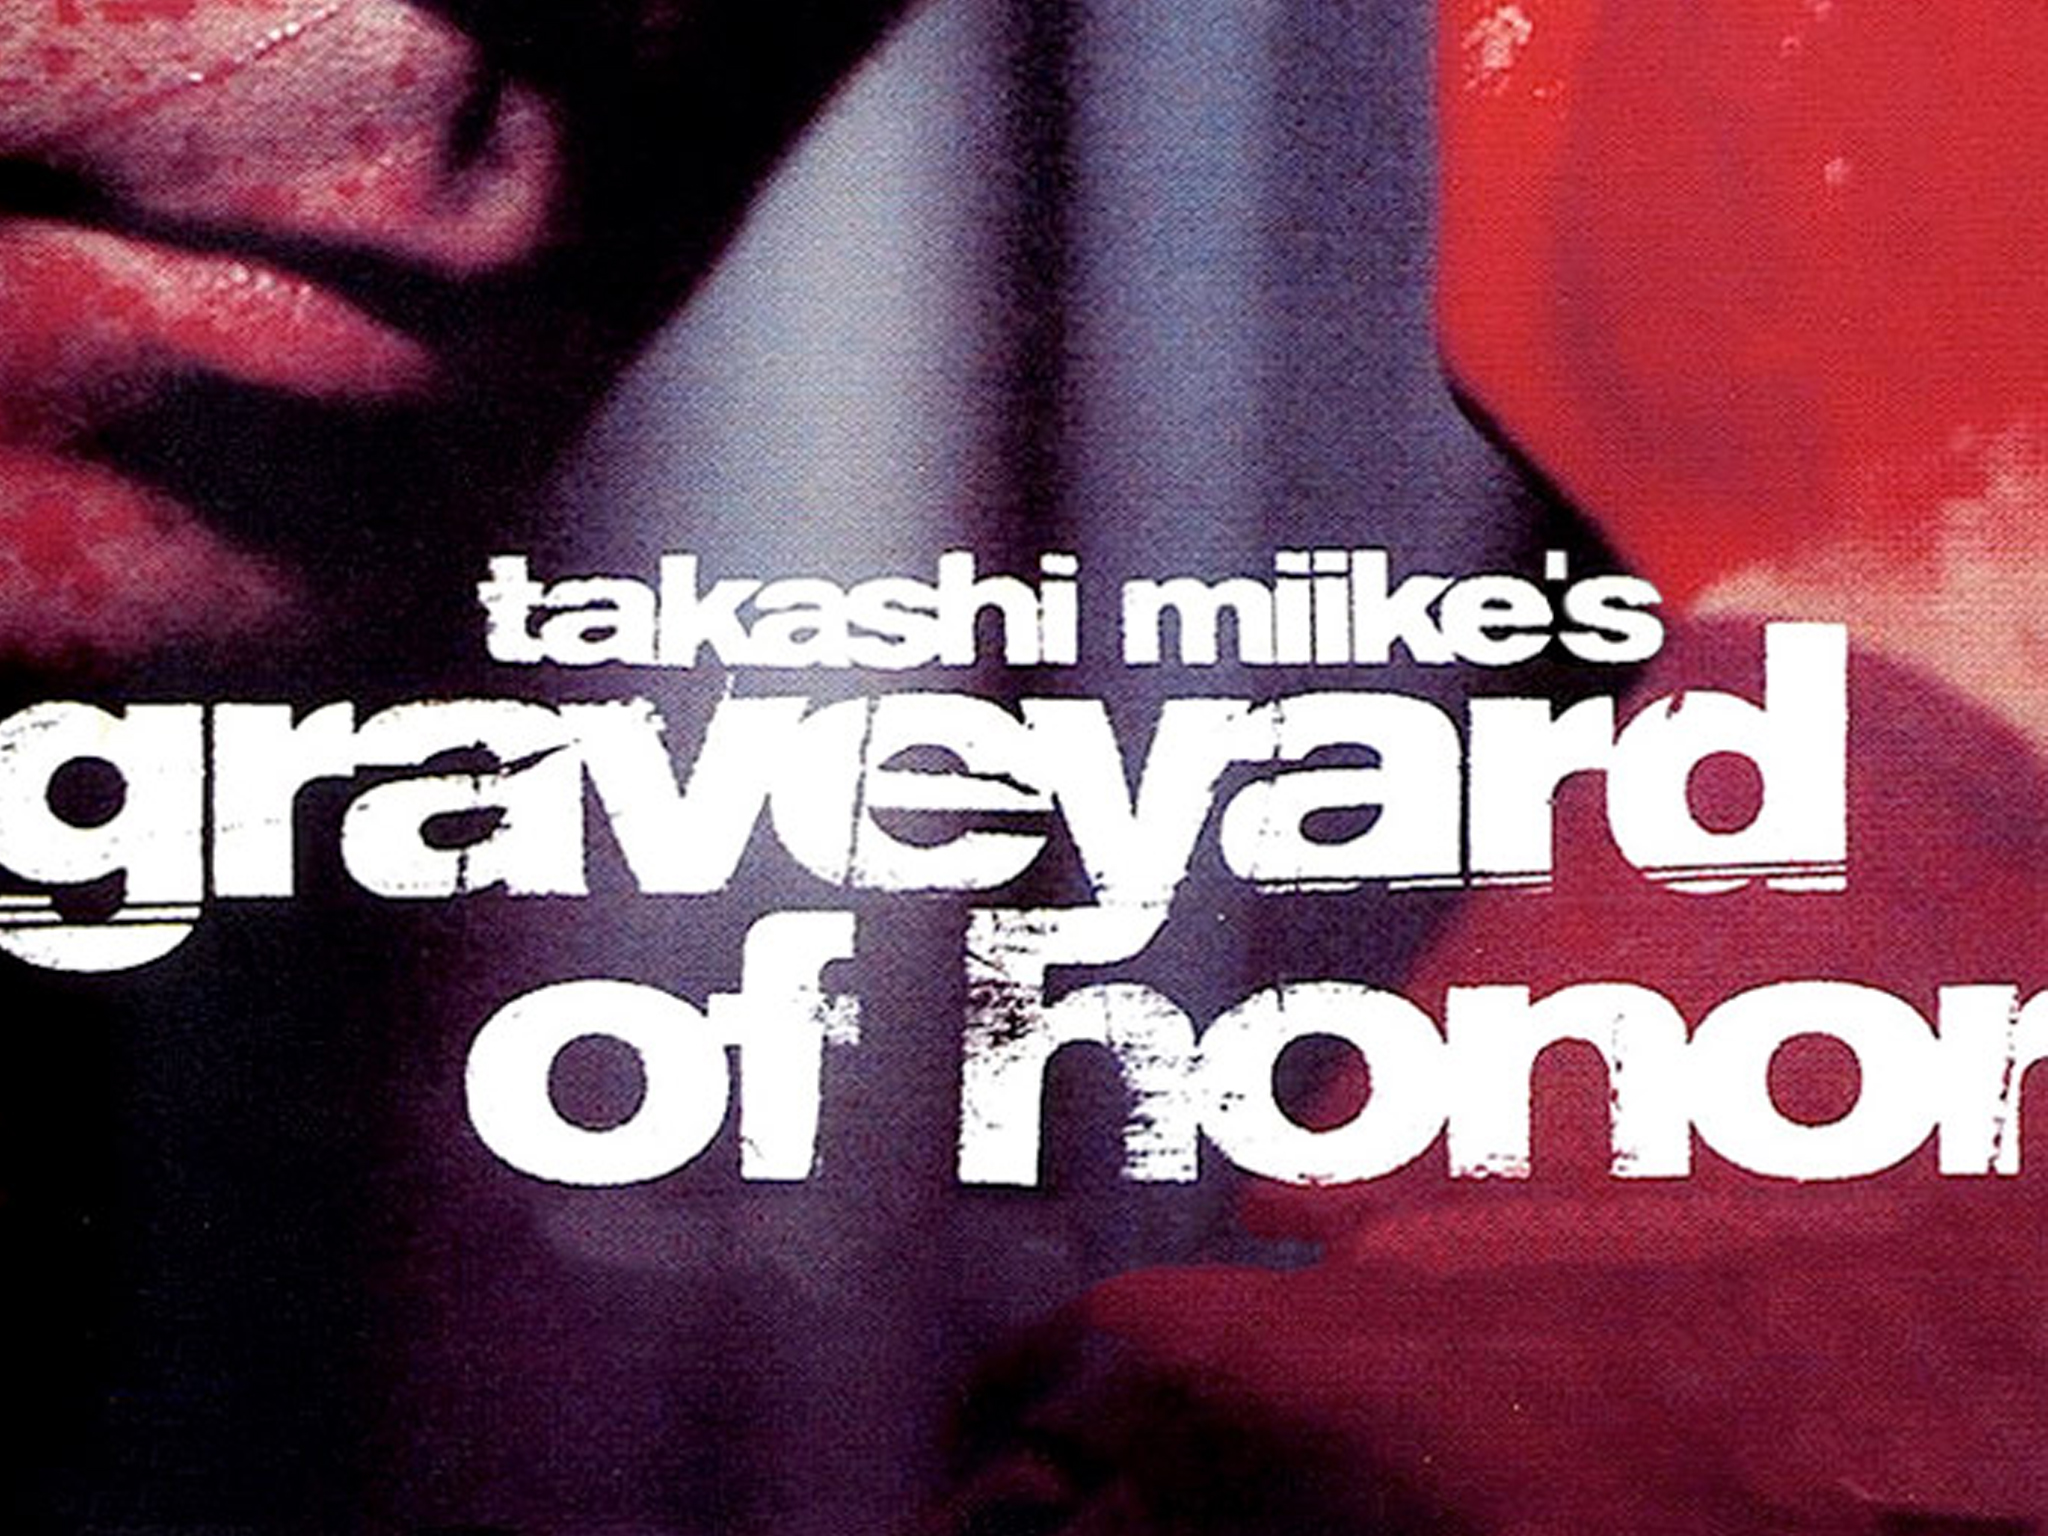 A former dishwasher becomes obsessed with the mayhem he inflicts as a henchman for a powerful yakuza chieftain. Directed by Takeshi Miike.